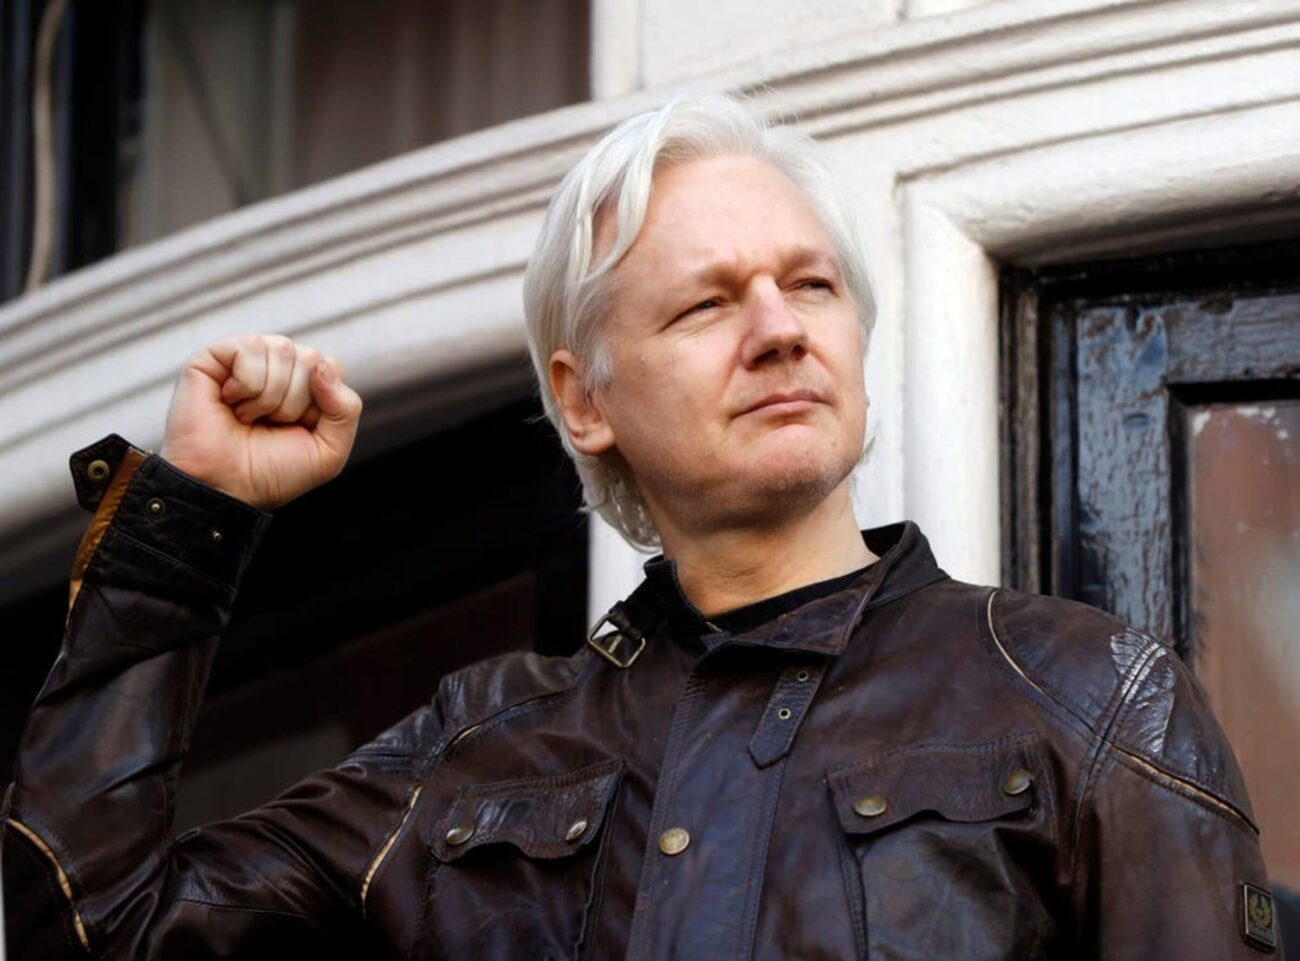 So far, 'WikiLeaks' holds a flawless document authentication system. But where is Julian Assange now? Find out the latest information on his case!